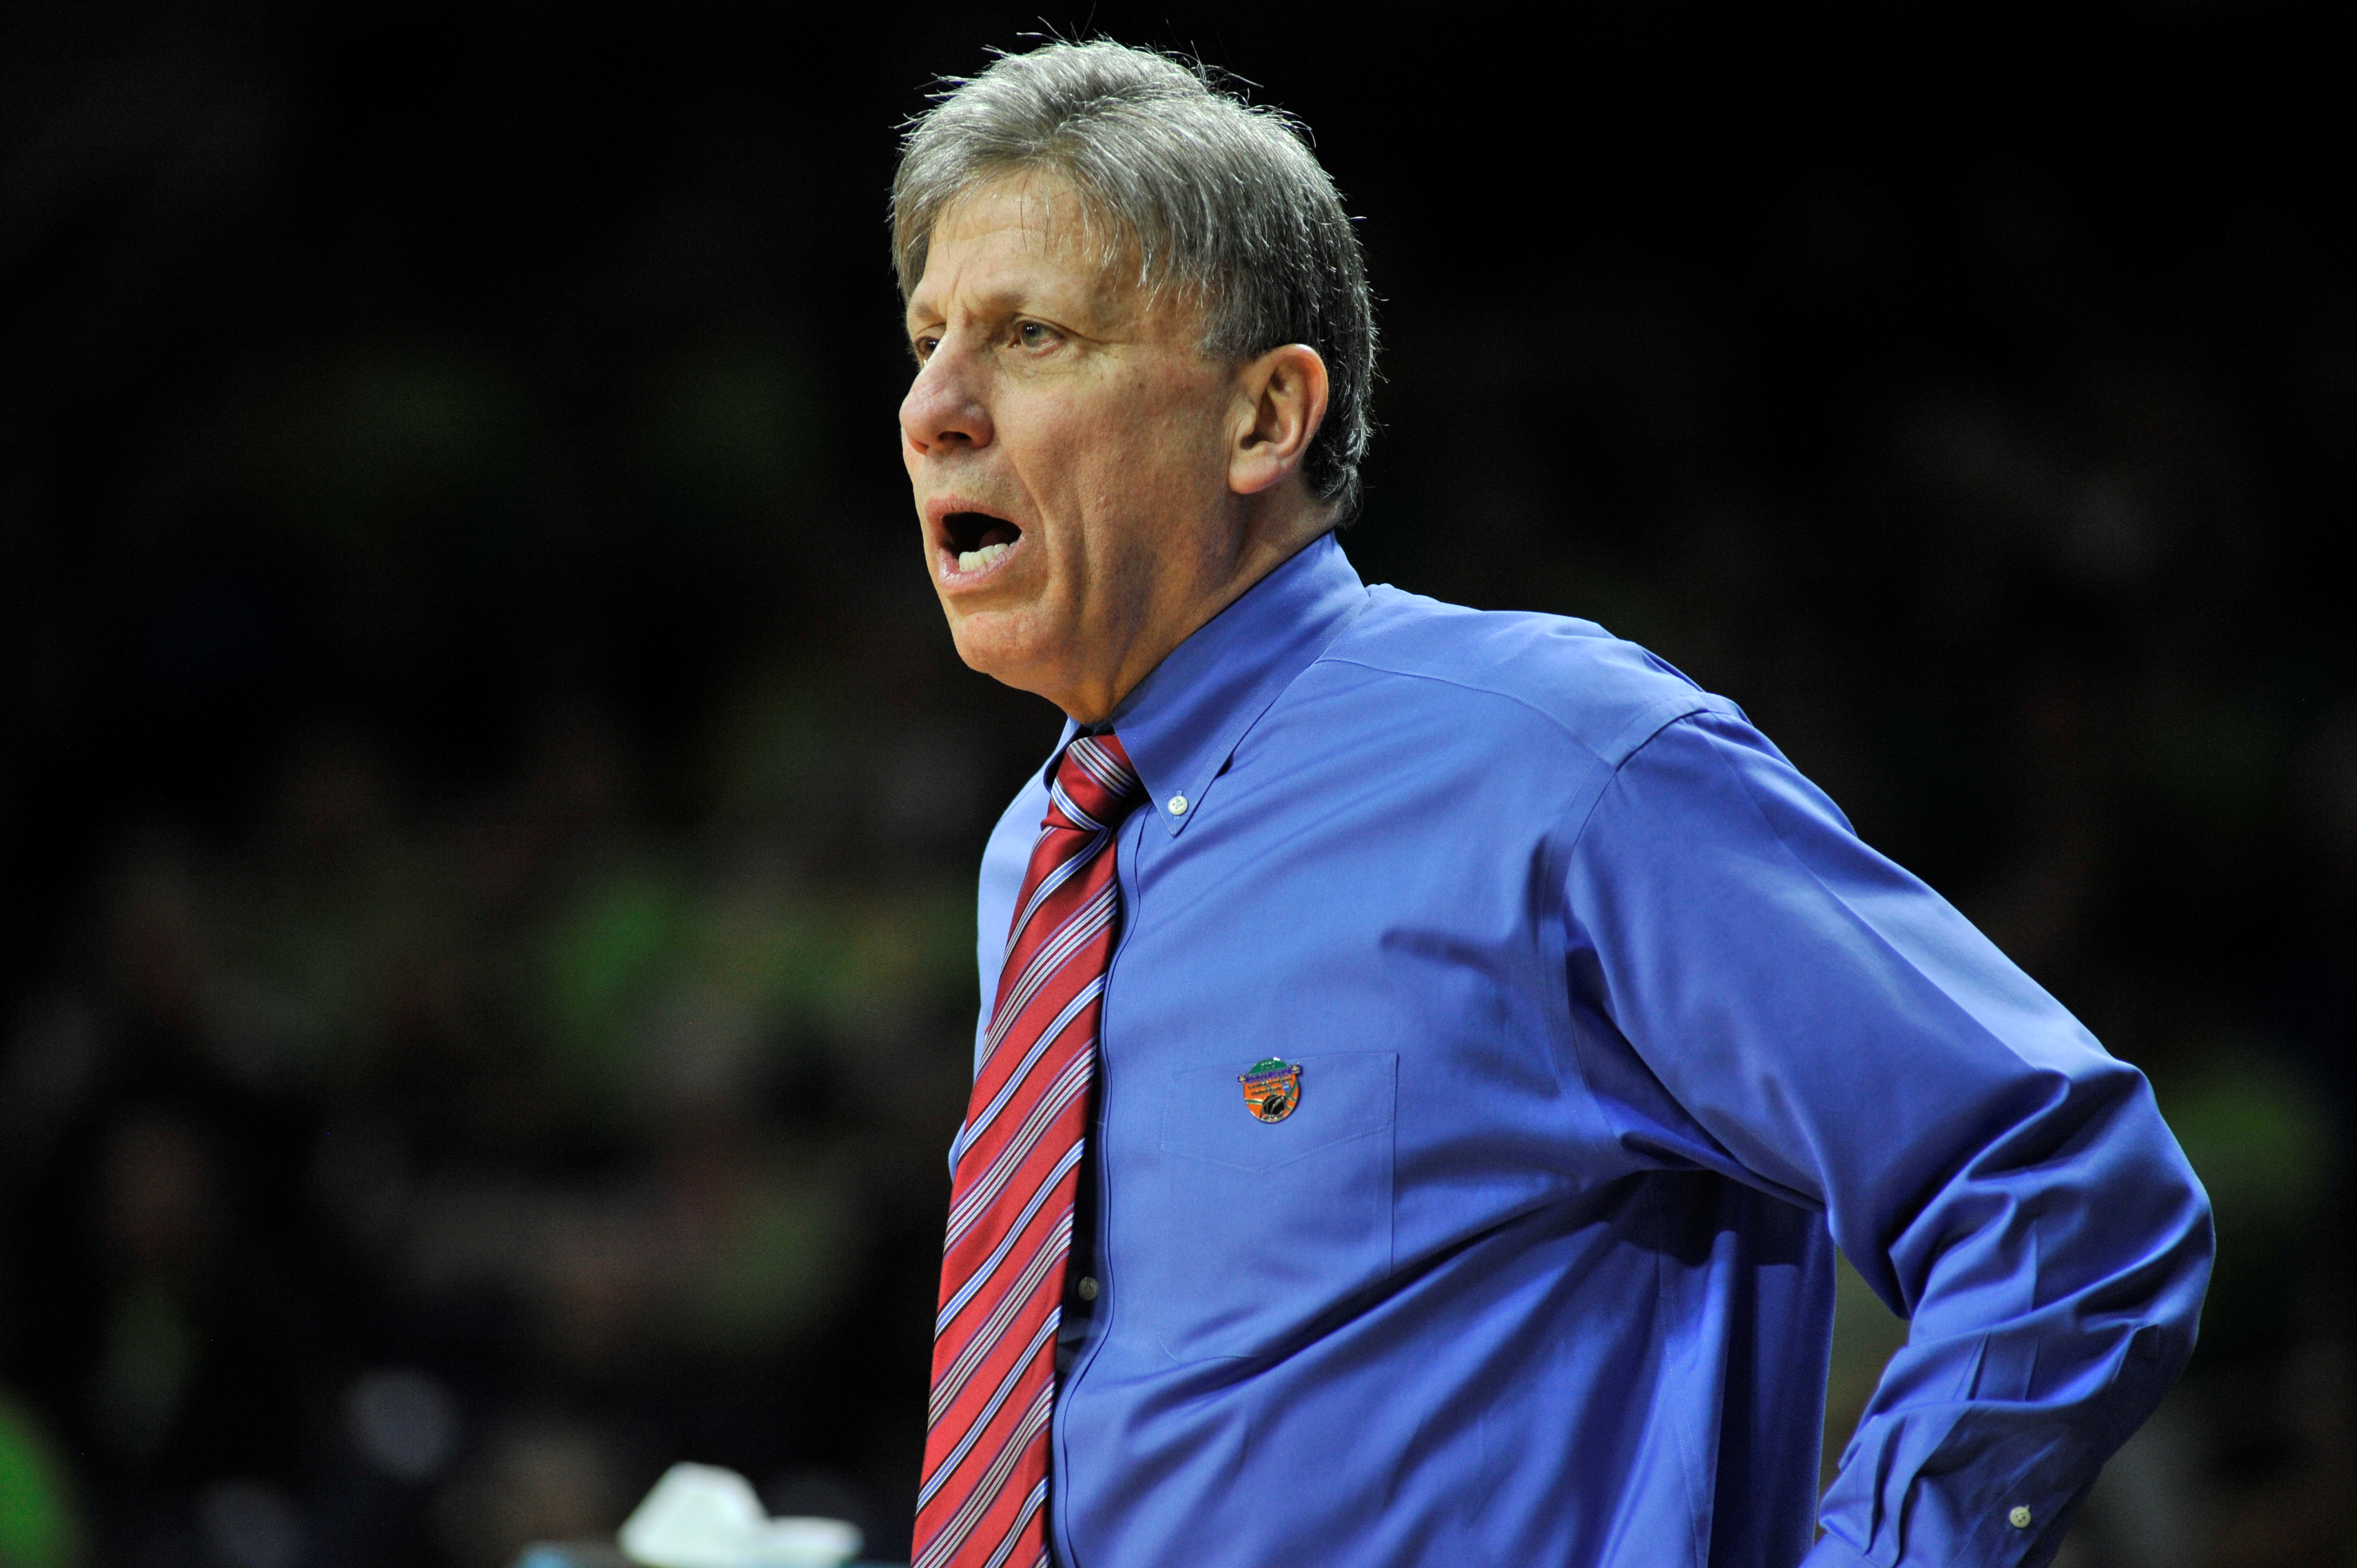 DePaul coach Doug Bruno reacts in the second half of a women's college basketball game against Minnesota in the first round of the NCAA tournament in South Bend, Ind., Friday, March 20, 2015.   (AP Photo/Joe Raymond)